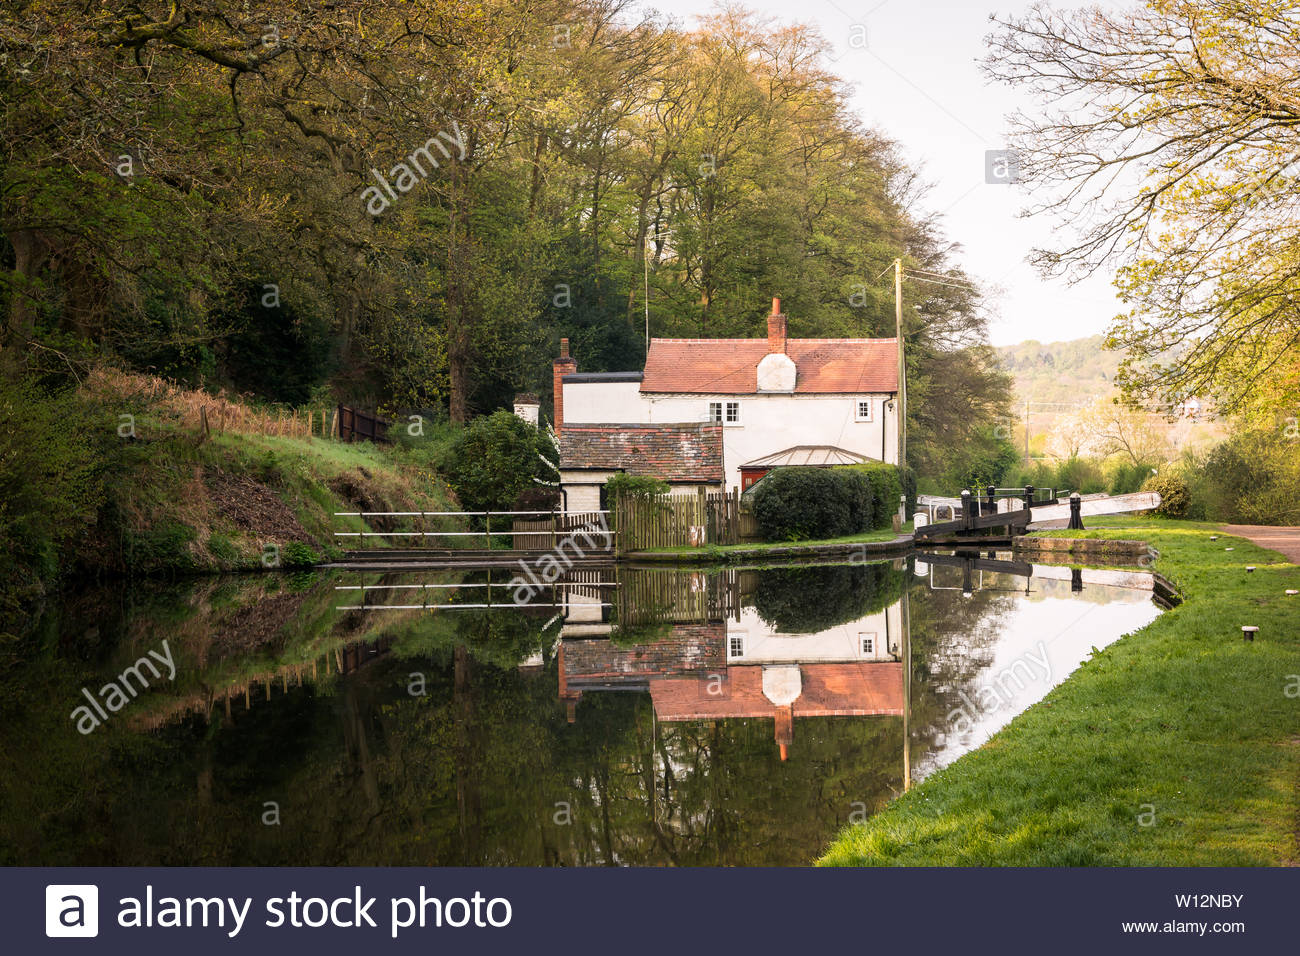 Hyde Lock is between Stourton and Kinver along the Staffordshire & Worcestershire Canal.  The cottage has a beautiful reflection in the still water of - Stock Image